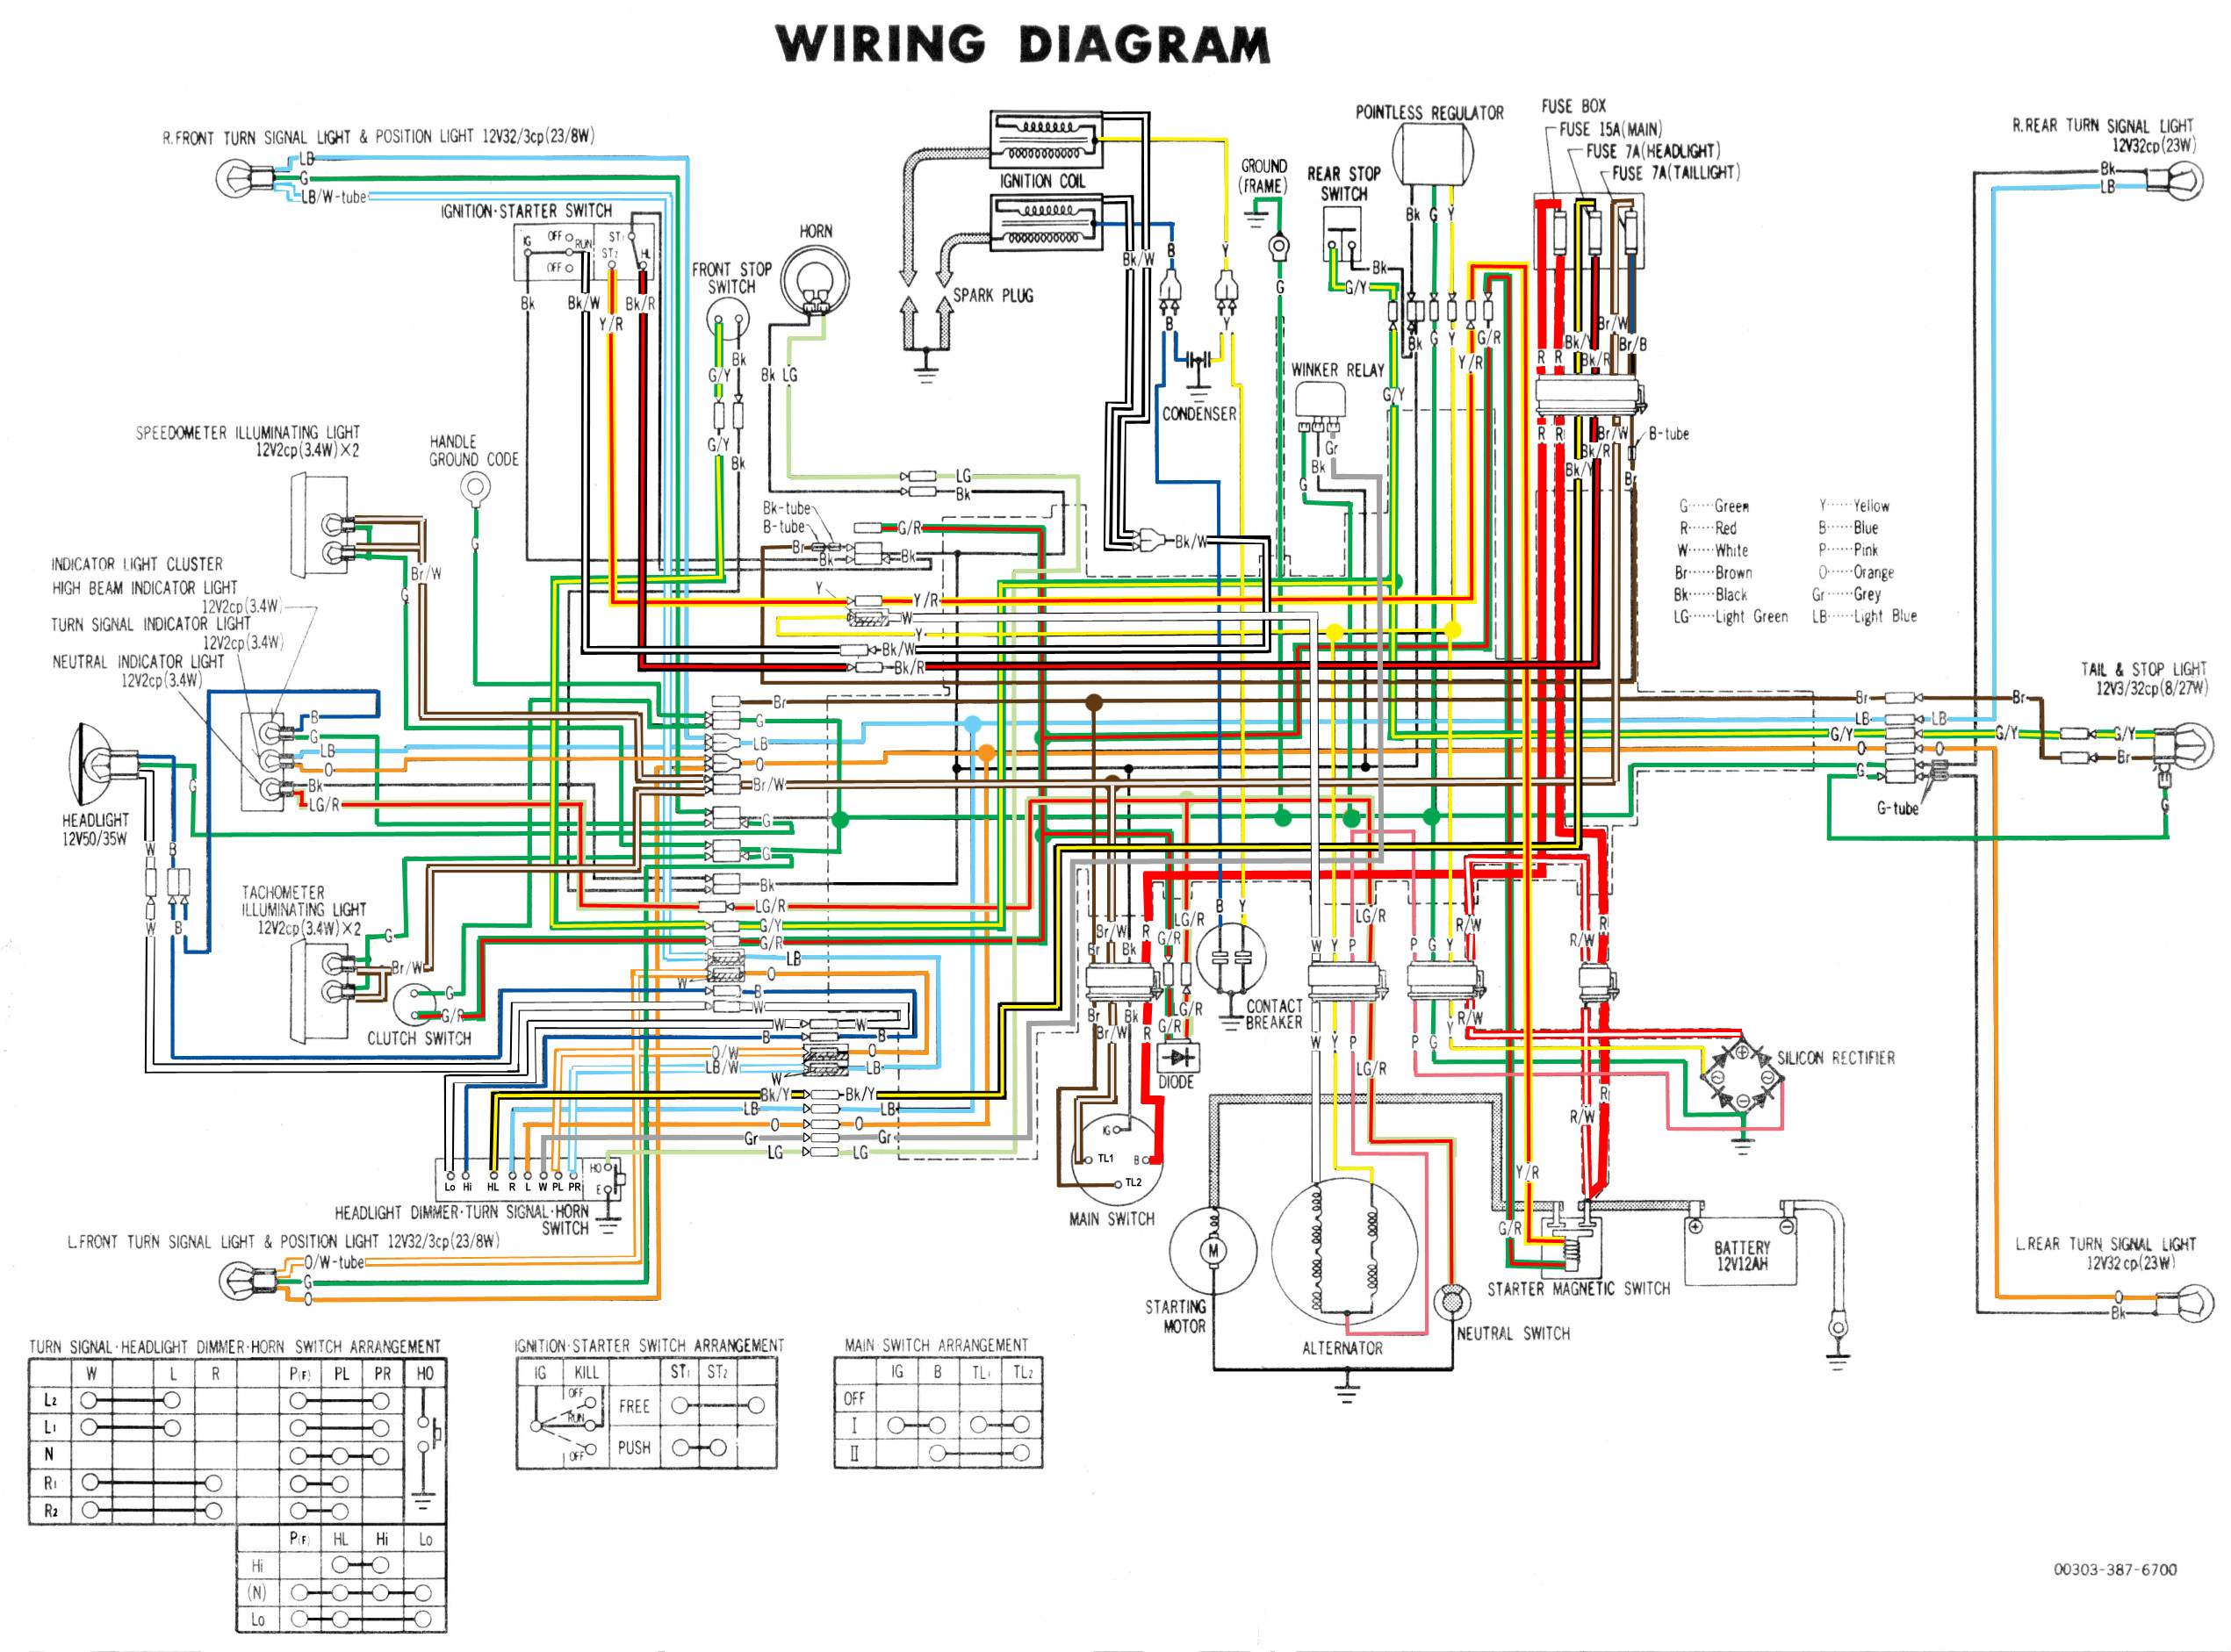 cbr 900rr wiring diagram group electrical schemes  cbr 900rr wiring diagram wiring diagram